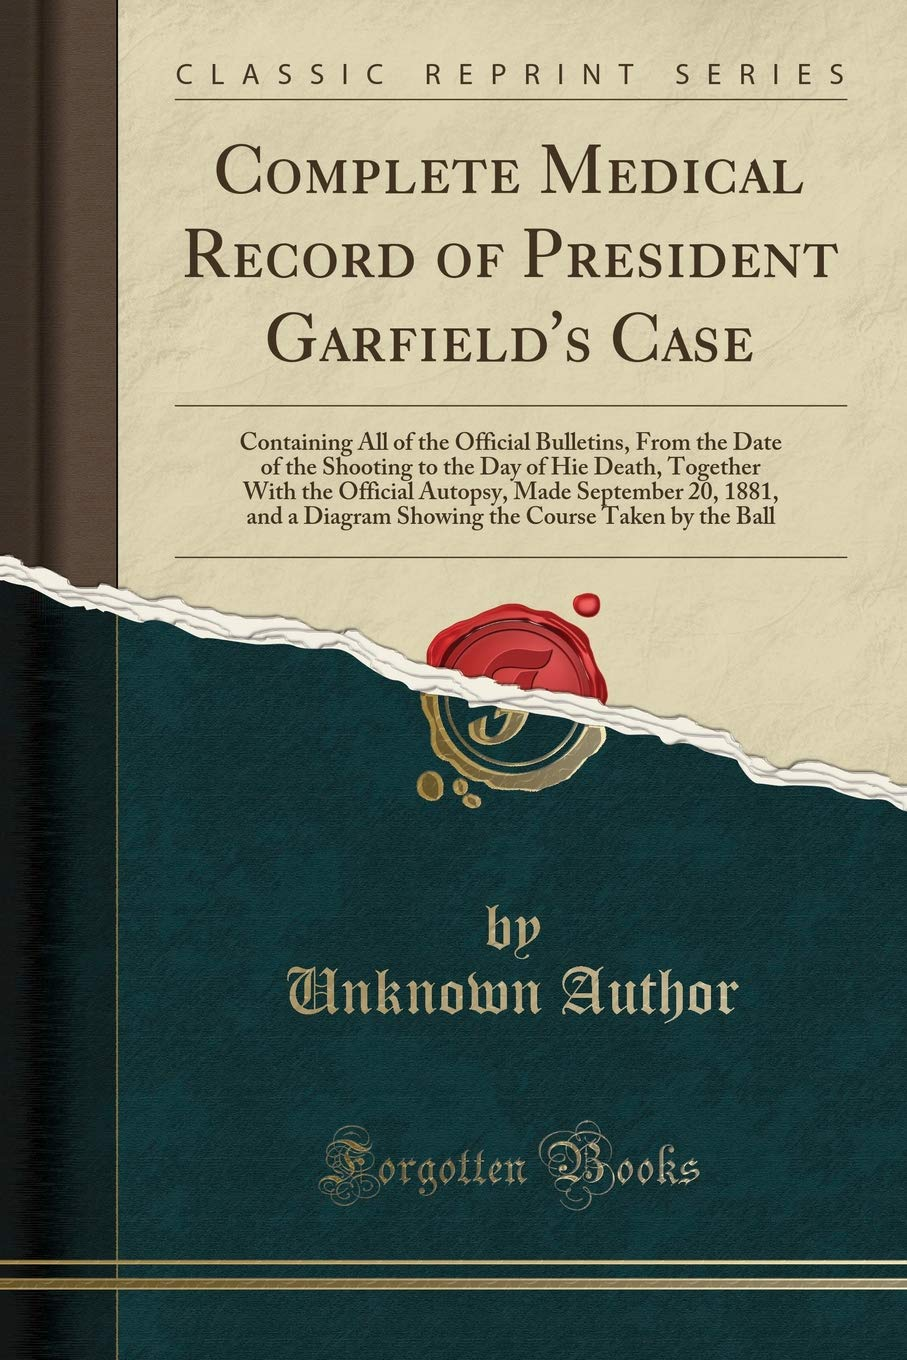 Download Complete Medical Record of President Garfield's Case: Containing All of the Official Bulletins, From the Date of the Shooting to the Day of Hie Death, ... and a Diagram Showing the Course Taken by t PDF